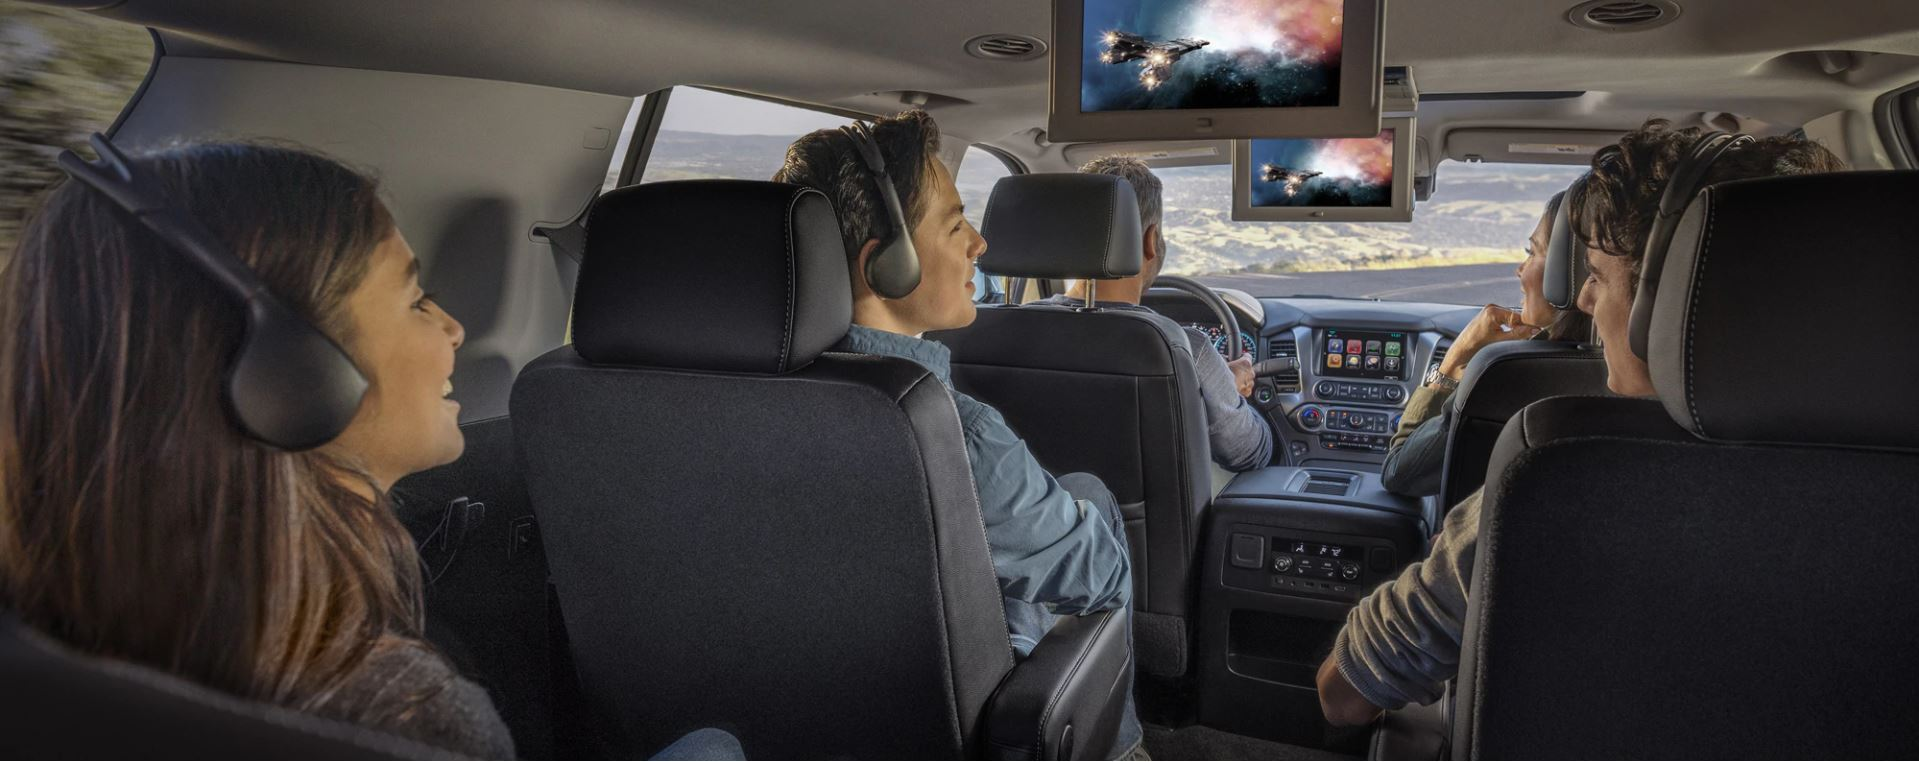 Entertainment Options in the 2020 Tahoe